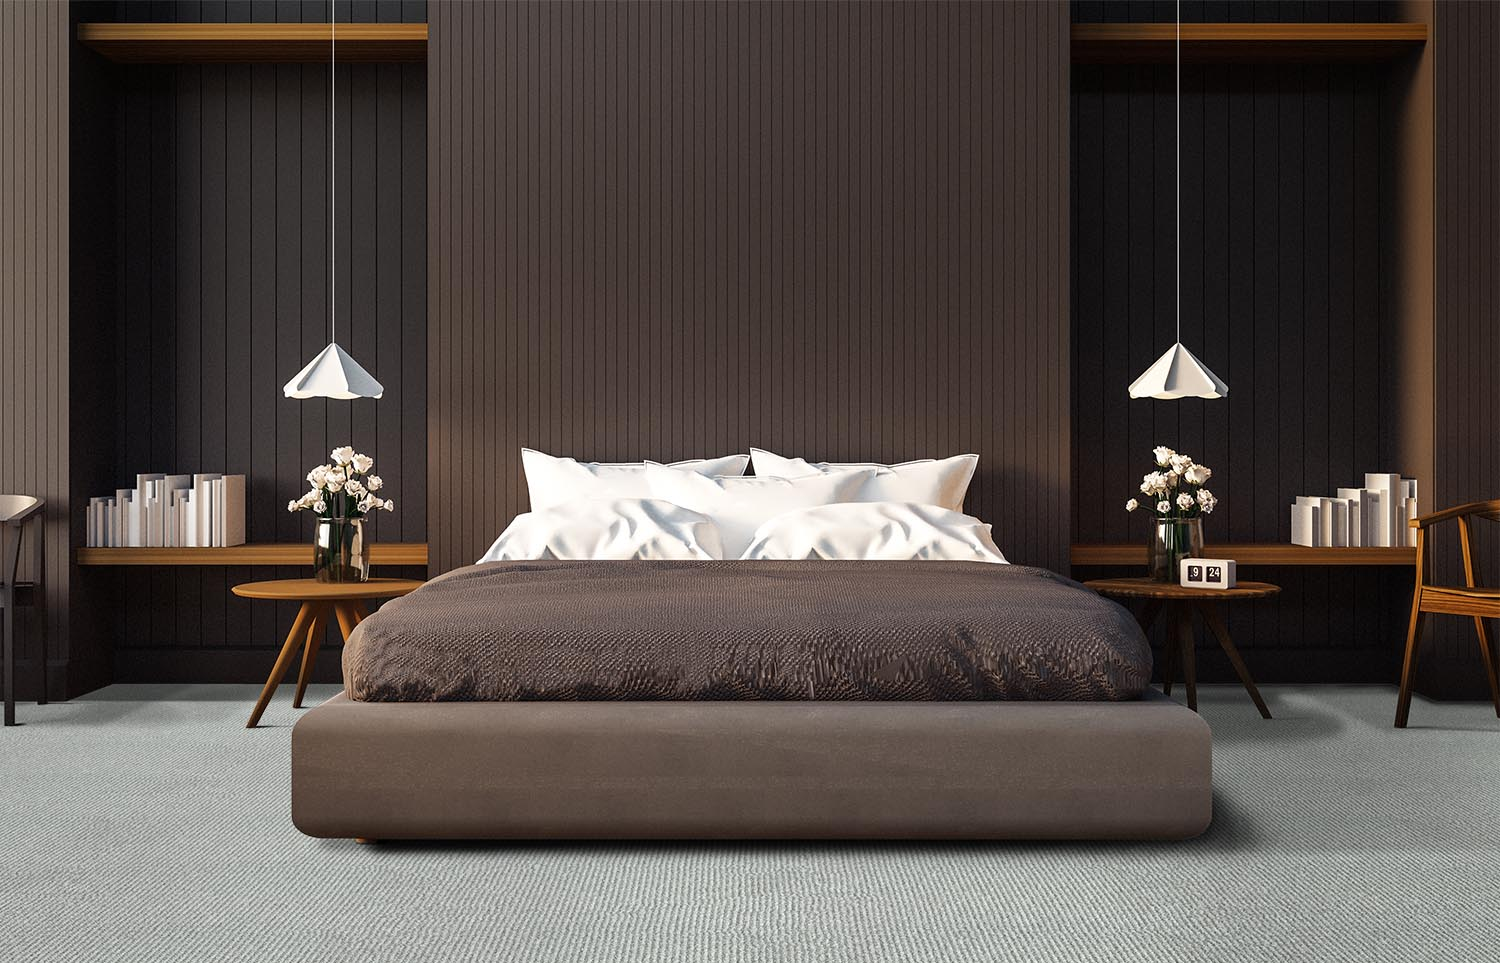 Mindful - Be Still contemporary bedroom